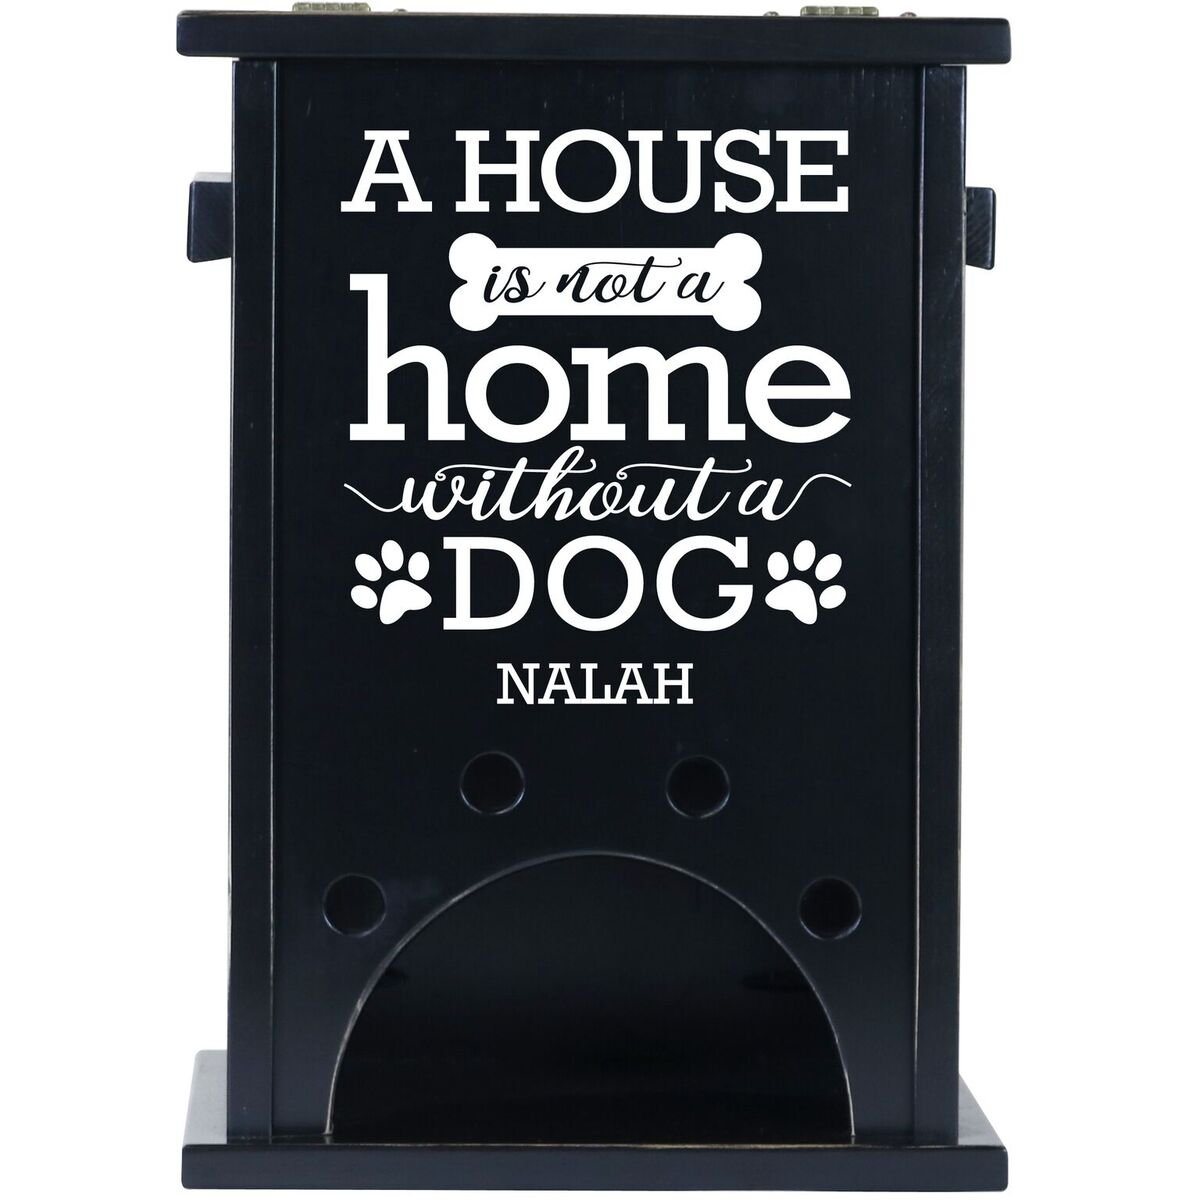 Personalized Custom Digital Pine Pet Toy Box Storage Organizer, Birthday gift for Dogs, Daughter, Sons, Boys and Girls, Grandchildren, Made in USA By Rooms Organized (Black)